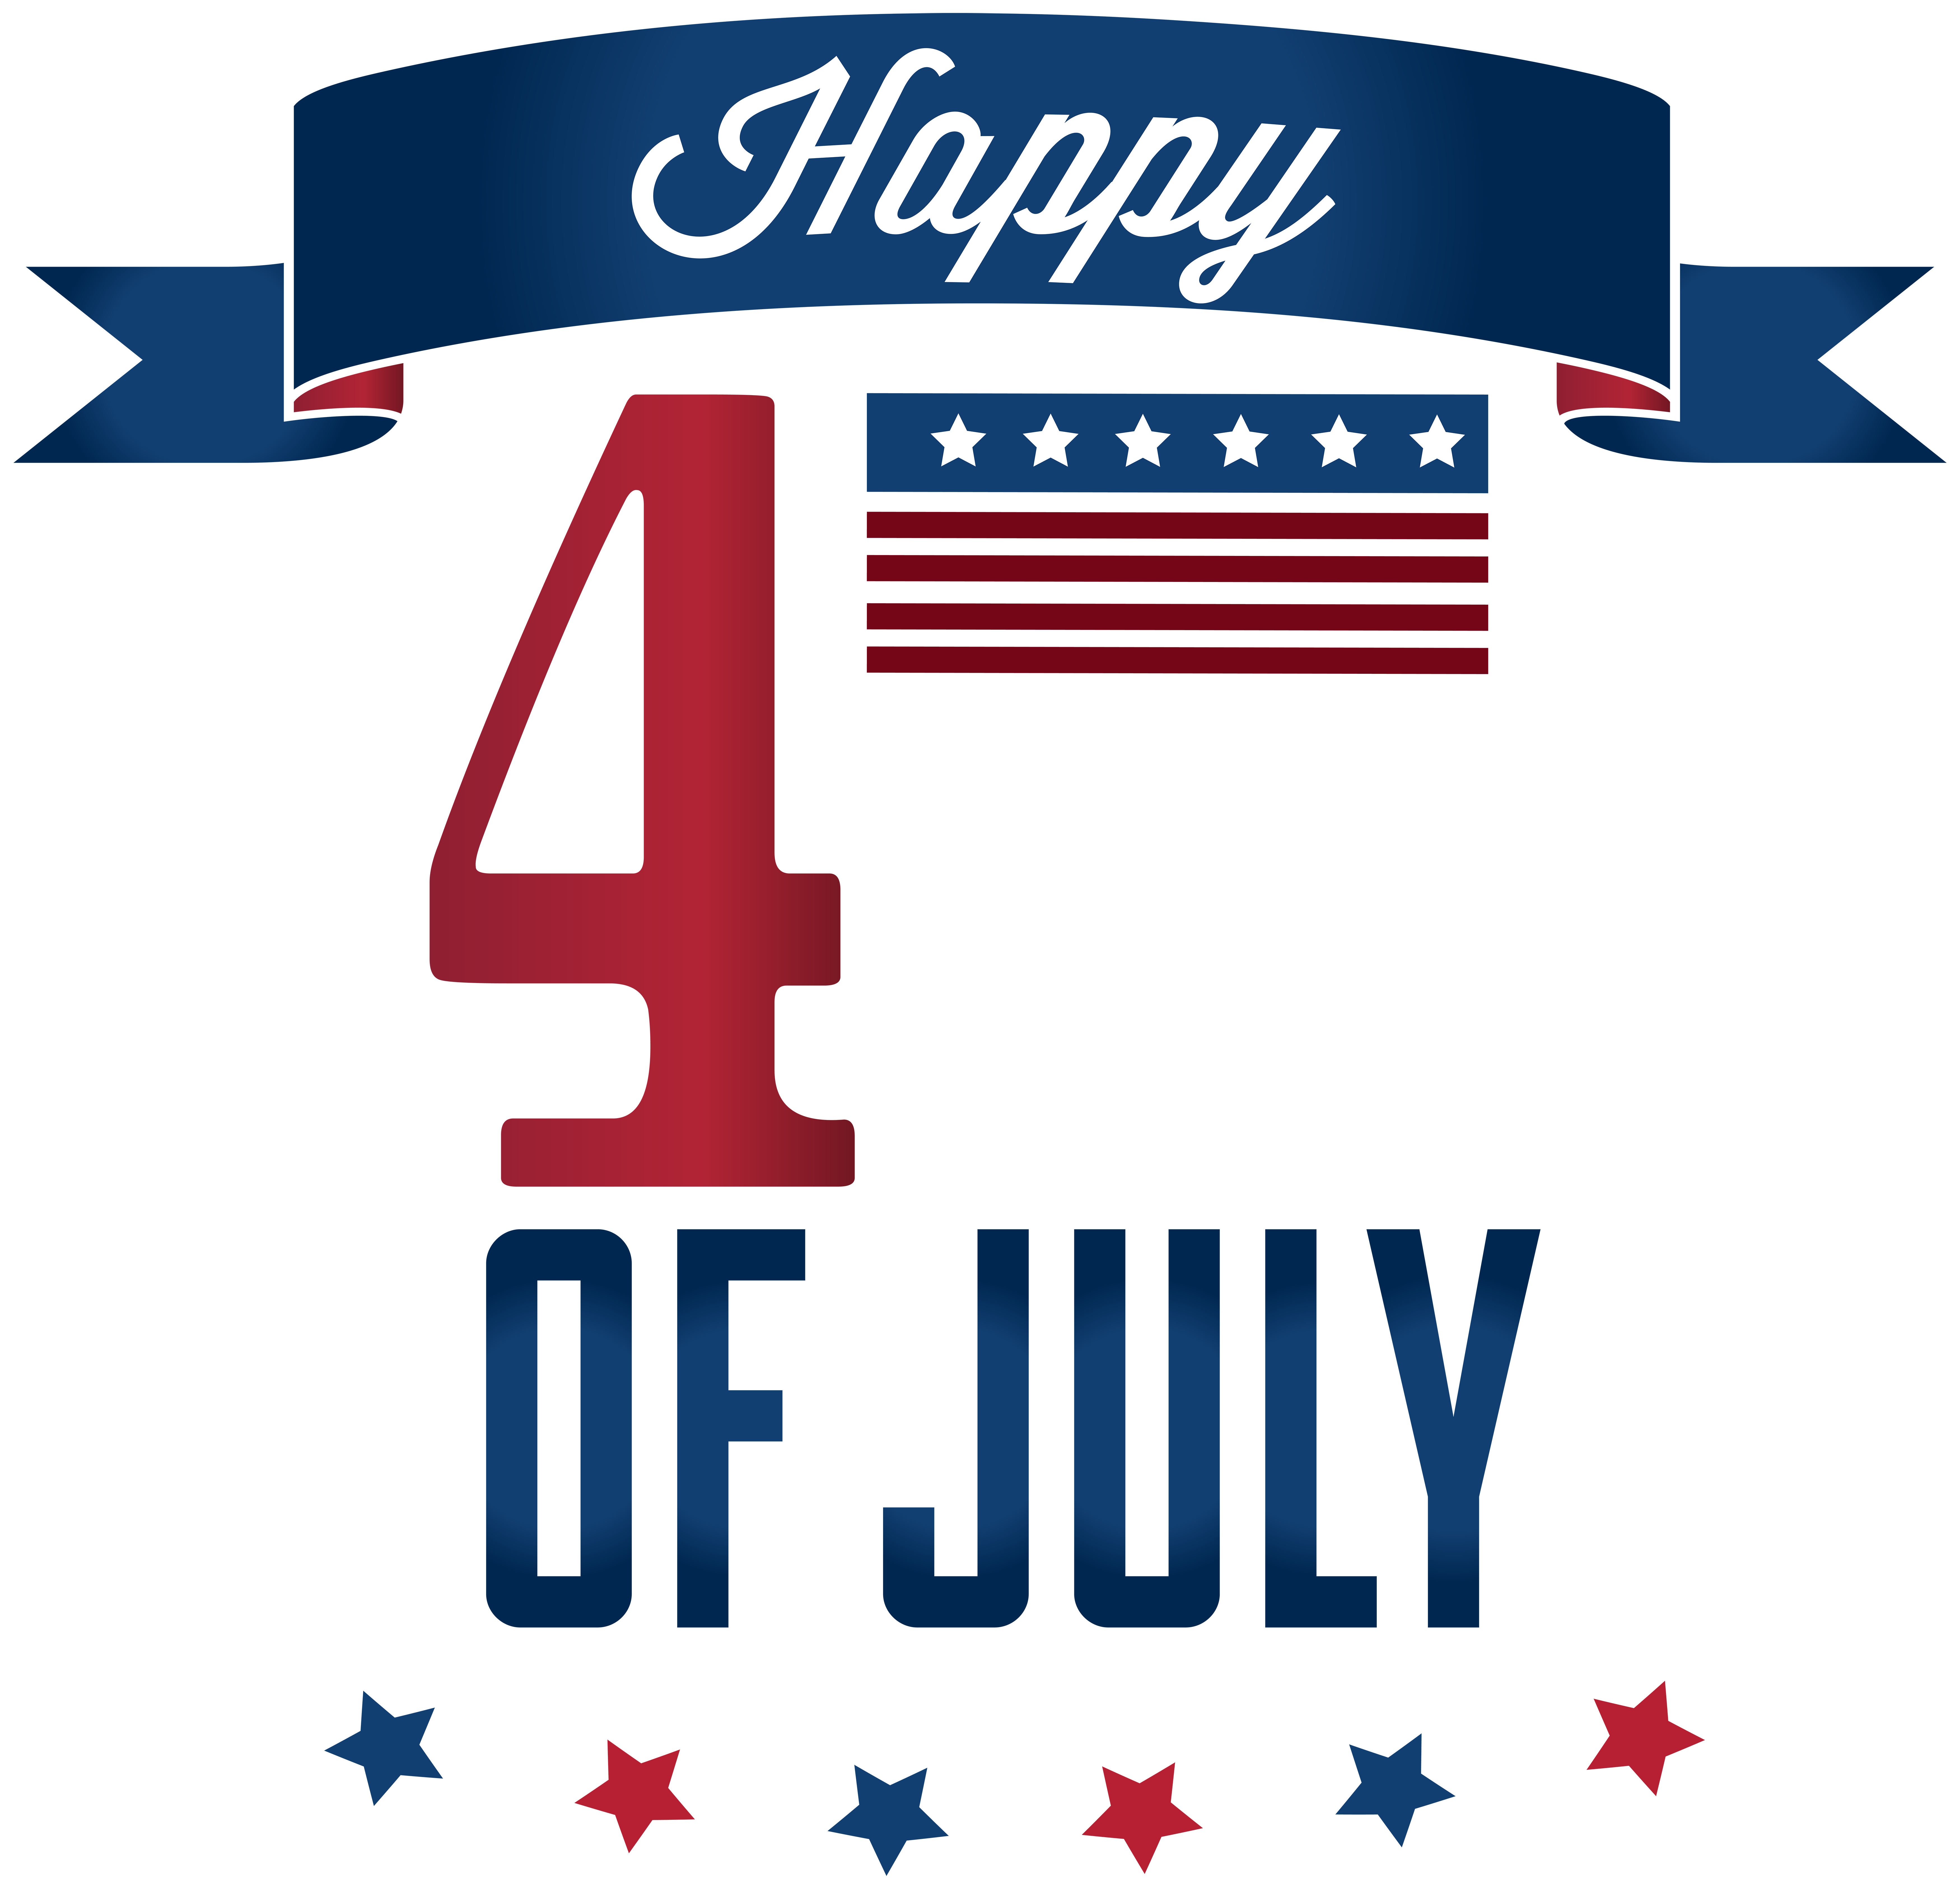 Happy 4th of july png. Th clip art image